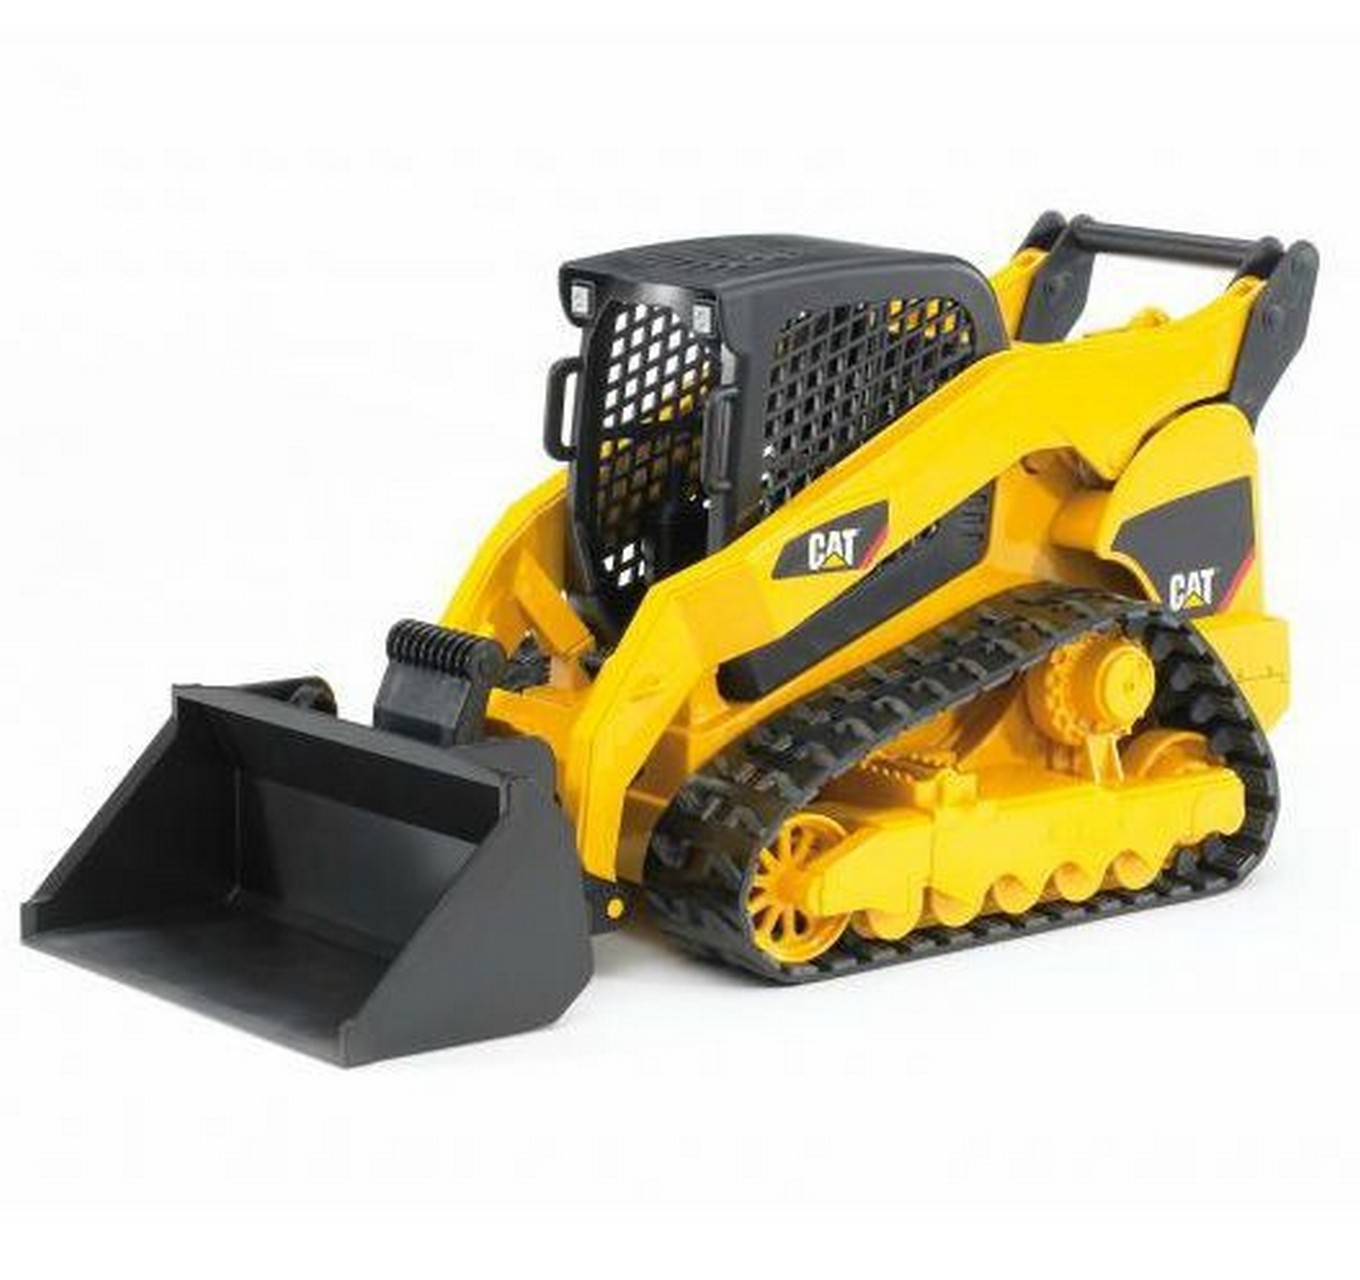 CAT Skid-Steer Track Loader